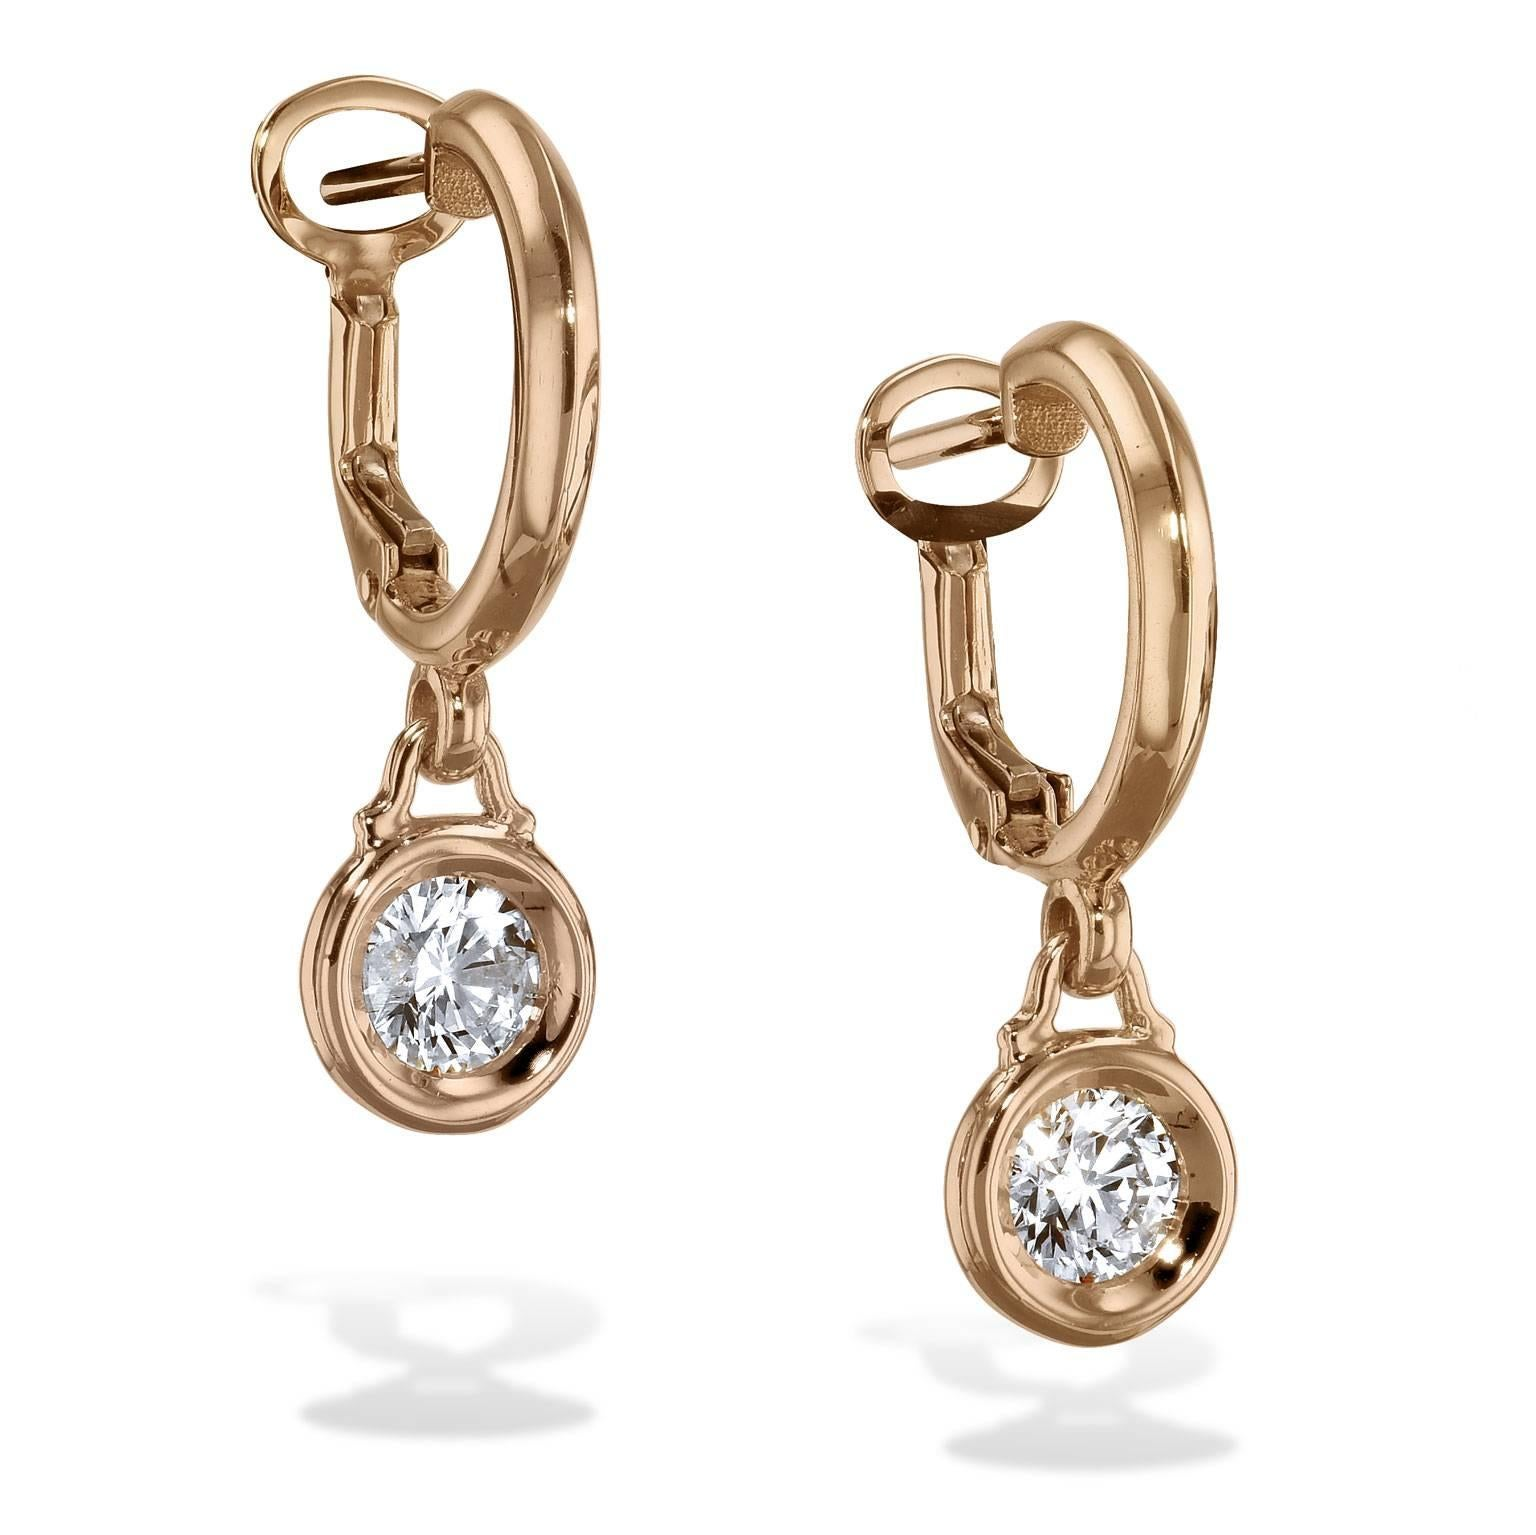 0 80 Carat Diamond Bezel Set Bauble Hoop Earrings For Sale at 1stdibs